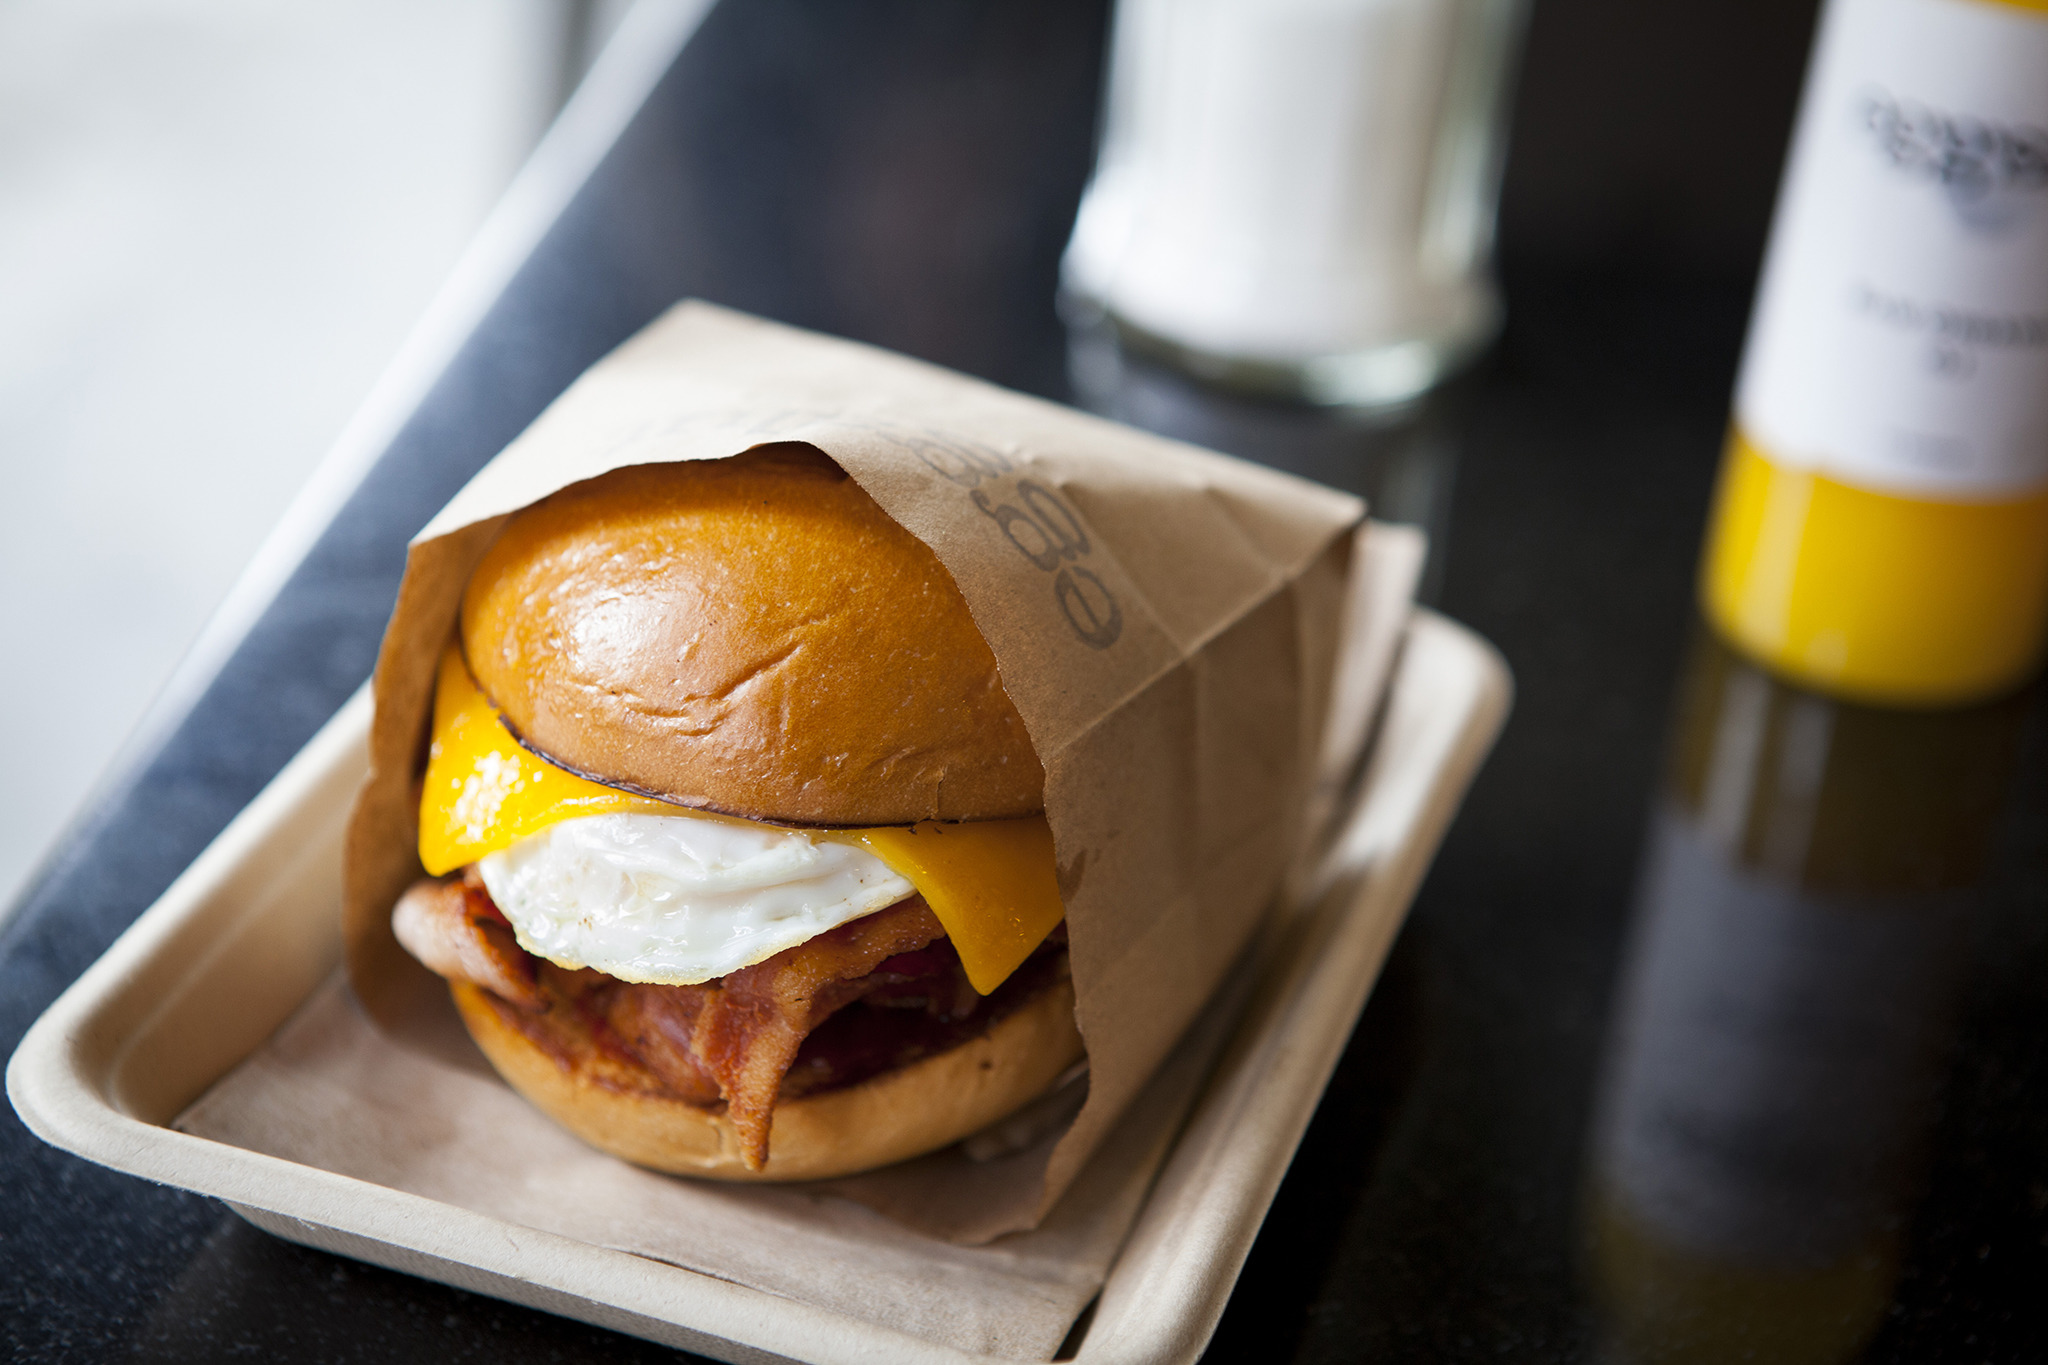 Eggslut is coming to Glendale, along with Shake Shack, Mainland Poke and more